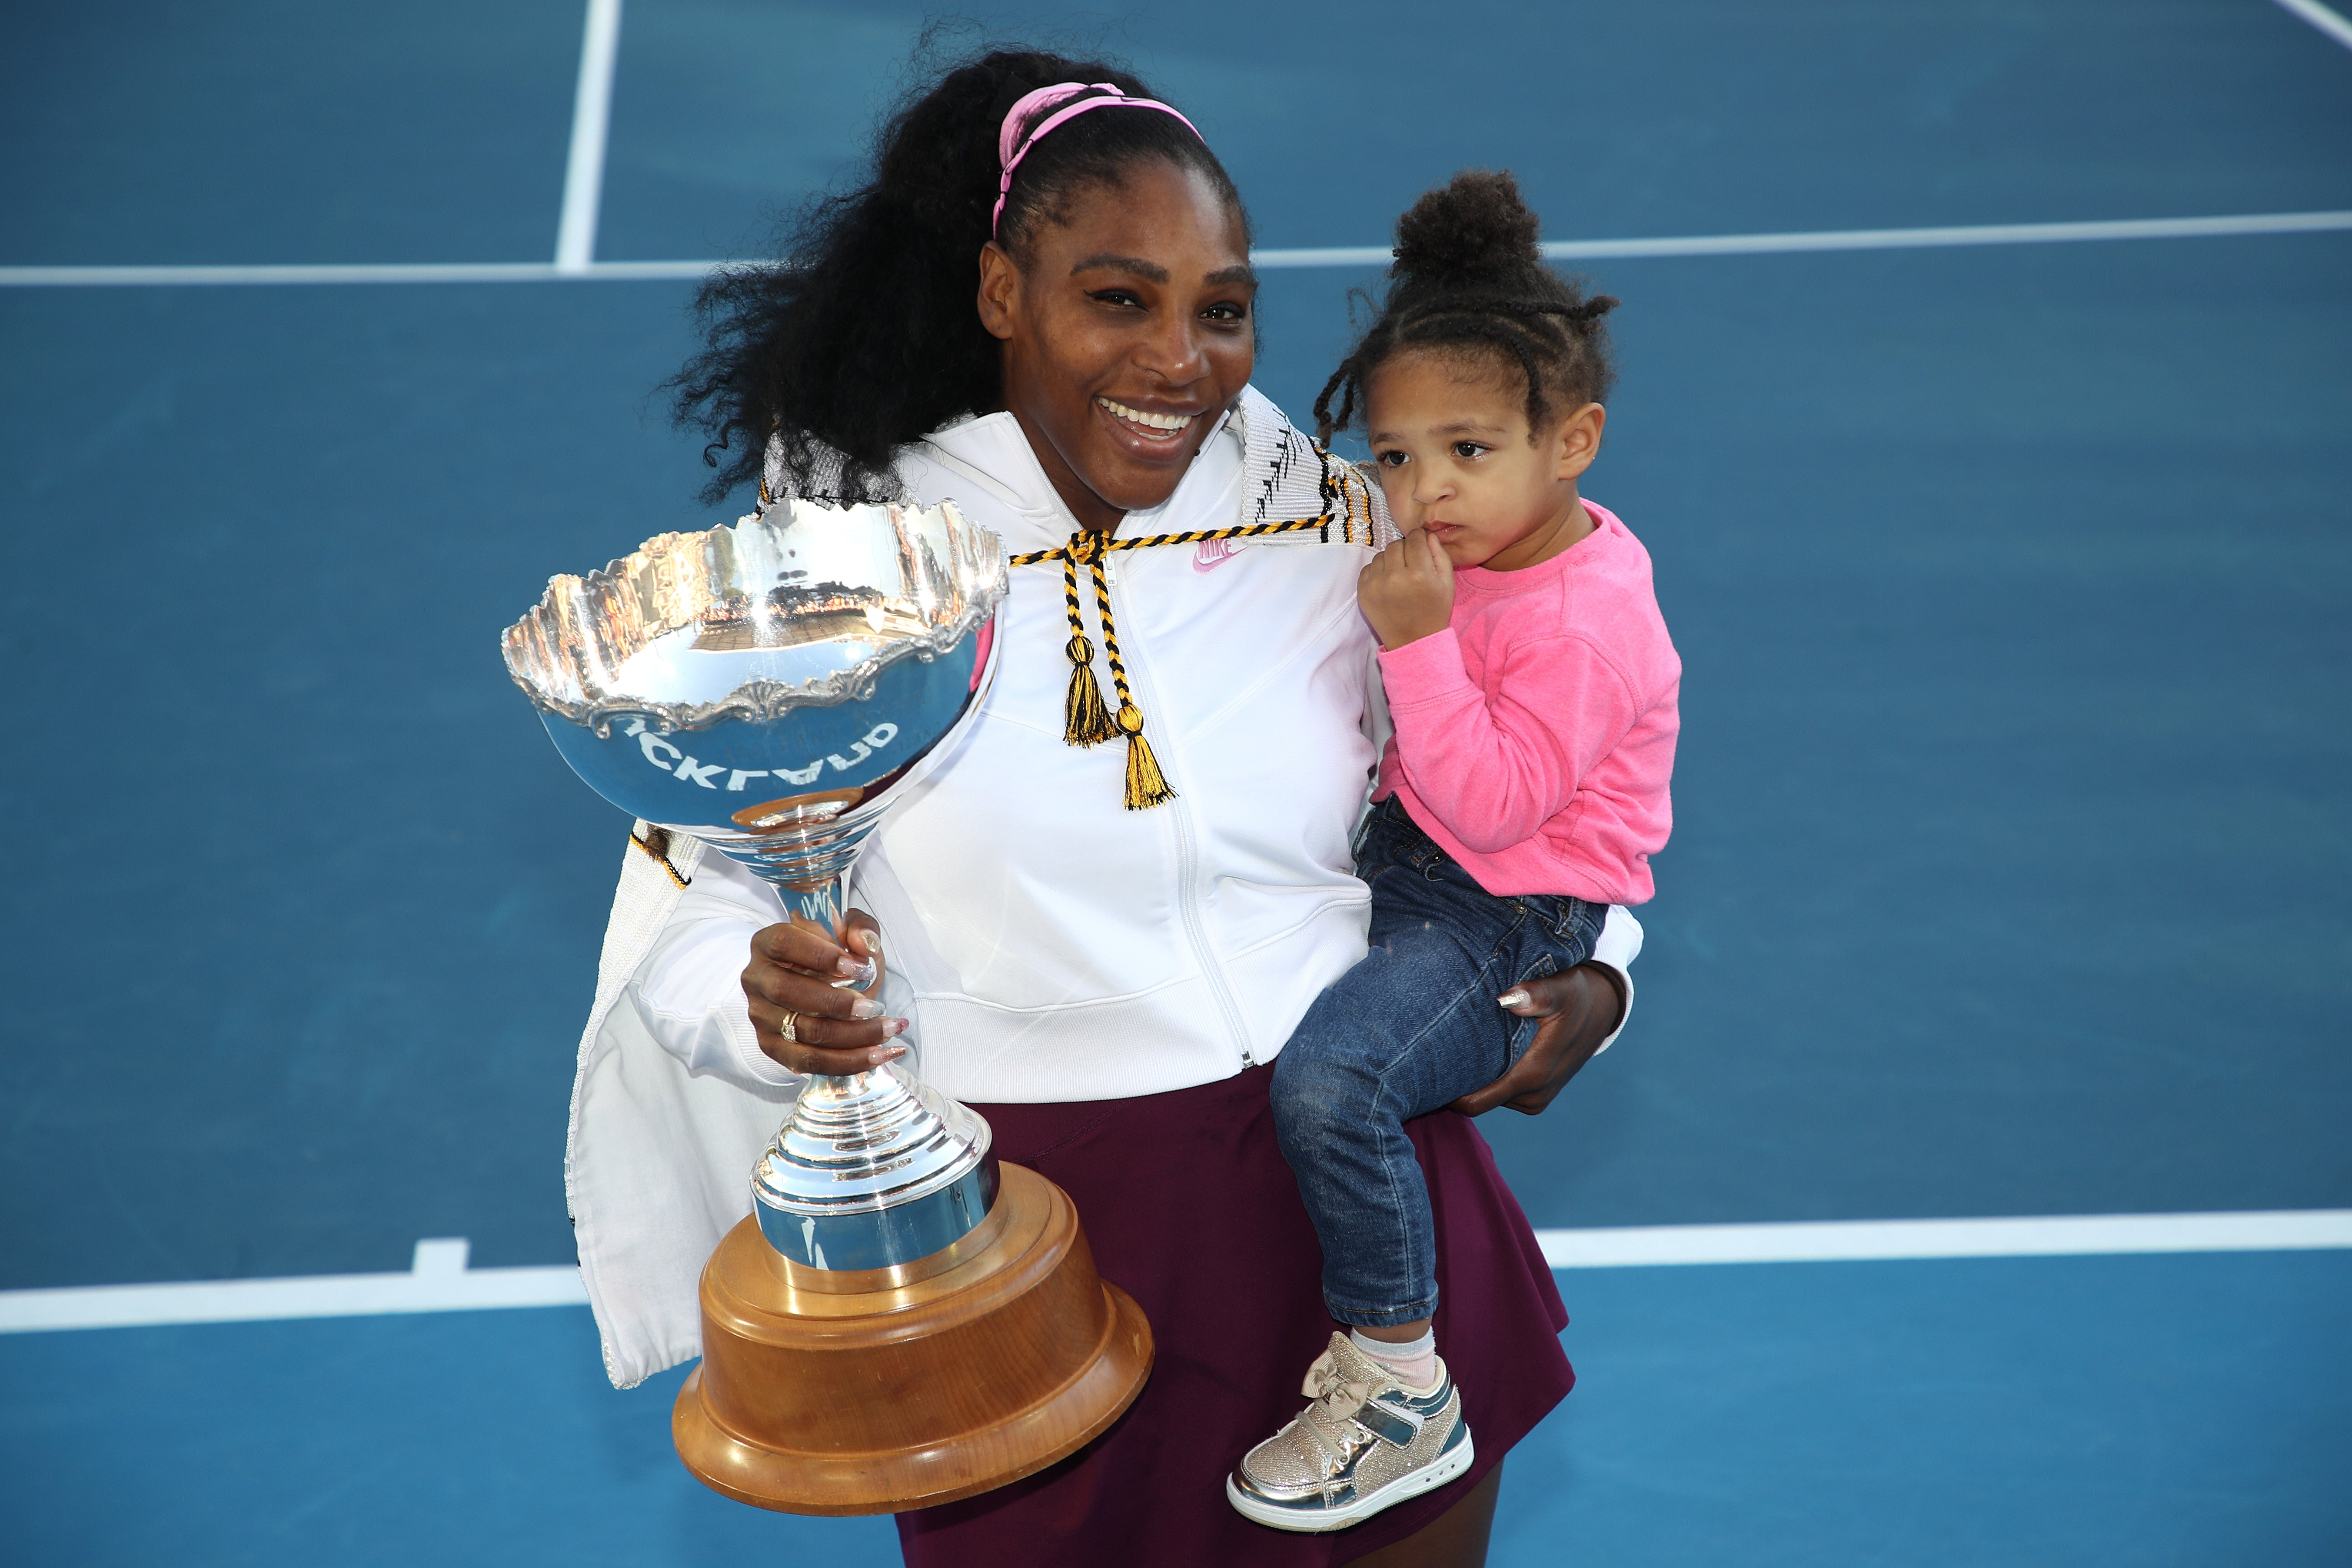 Serena Williams and Olympia Ohanian on the court at the 2020 Women's ASB Classic at ASB Tennis Centre on January 12, 2020 in Auckland, New Zealand. | Source: Getty Images